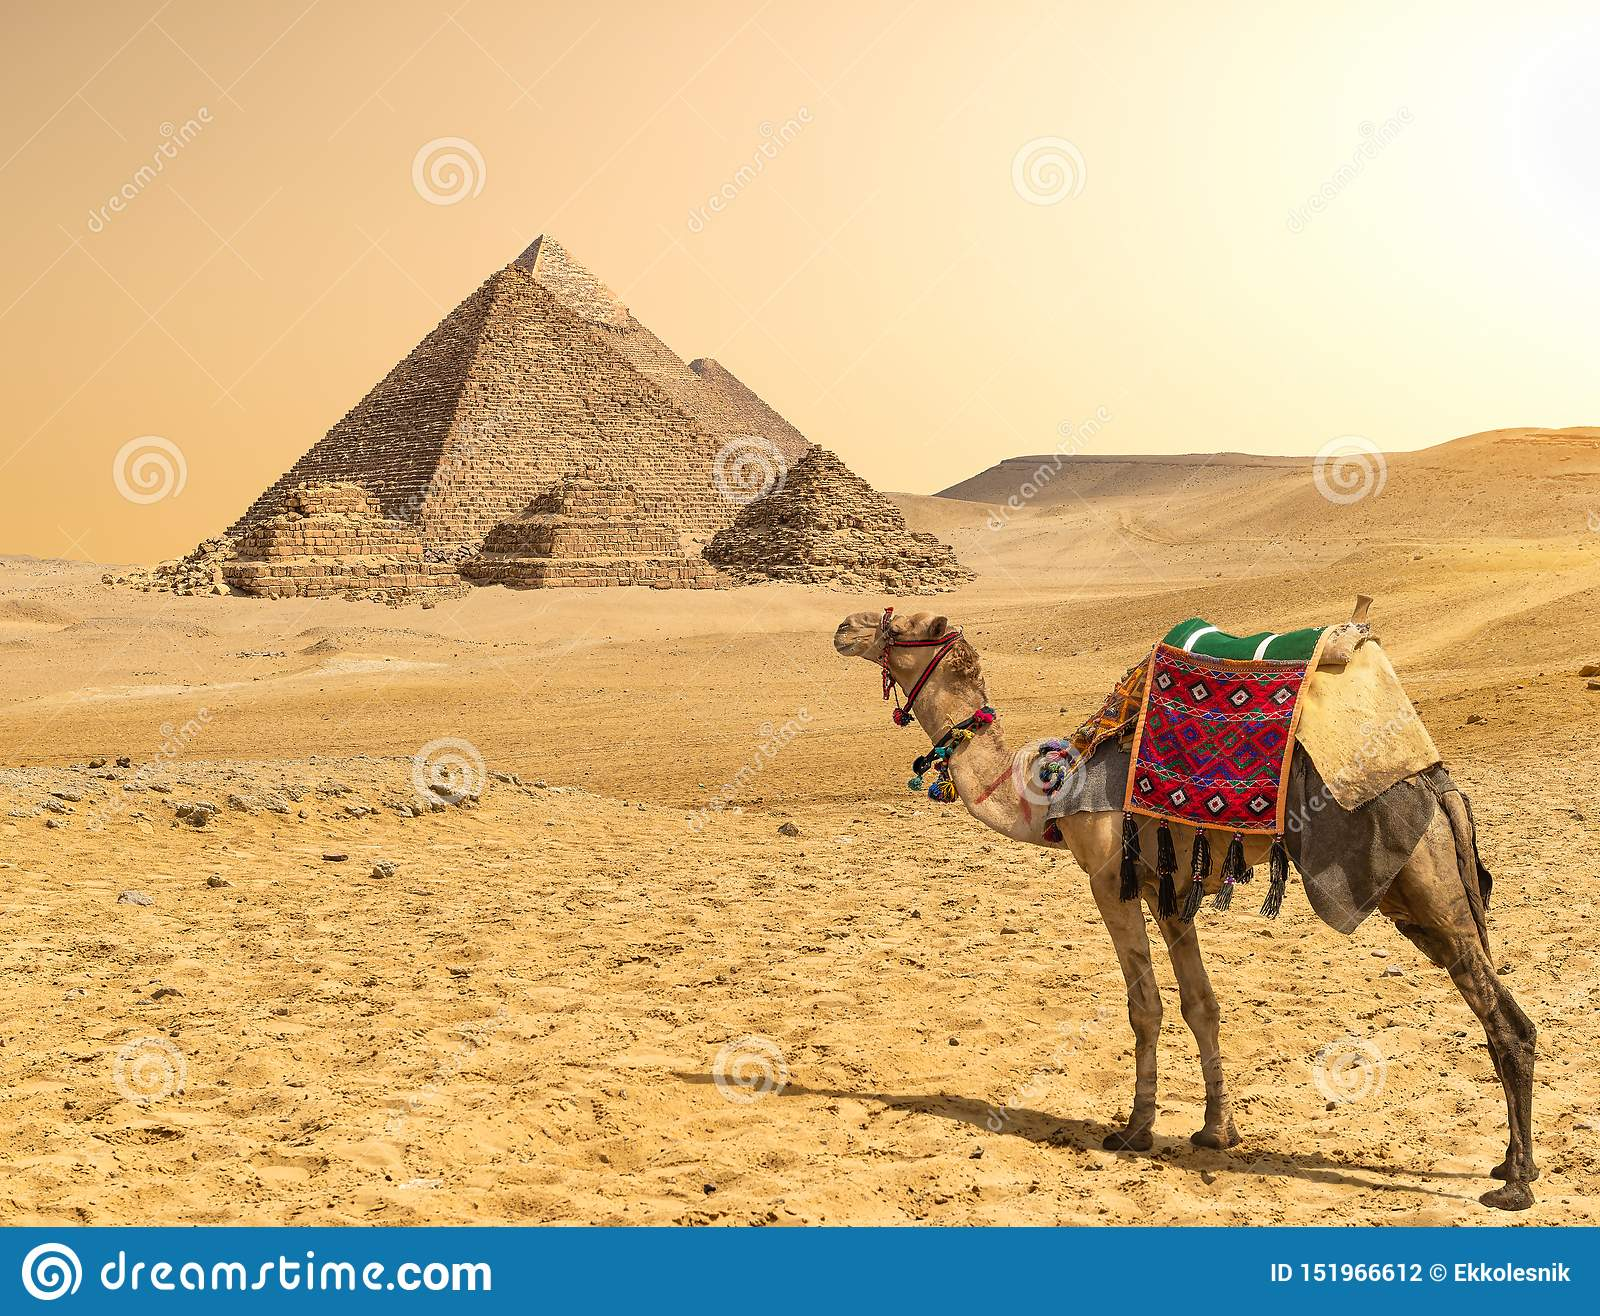 Camel and Pyramids in a row